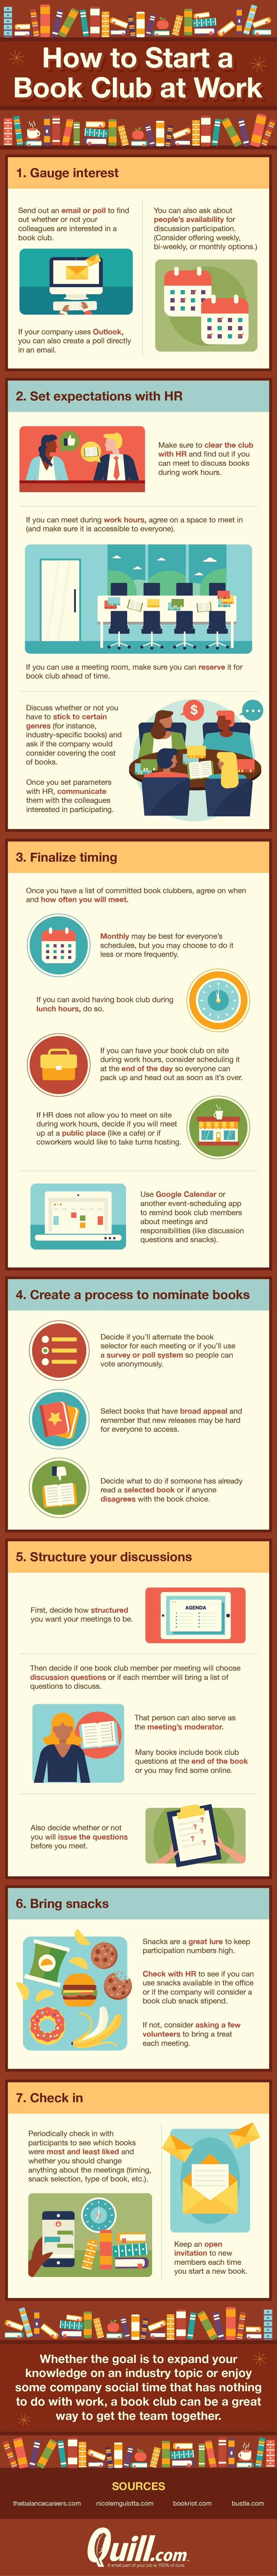 How to start a book club at work #infographic